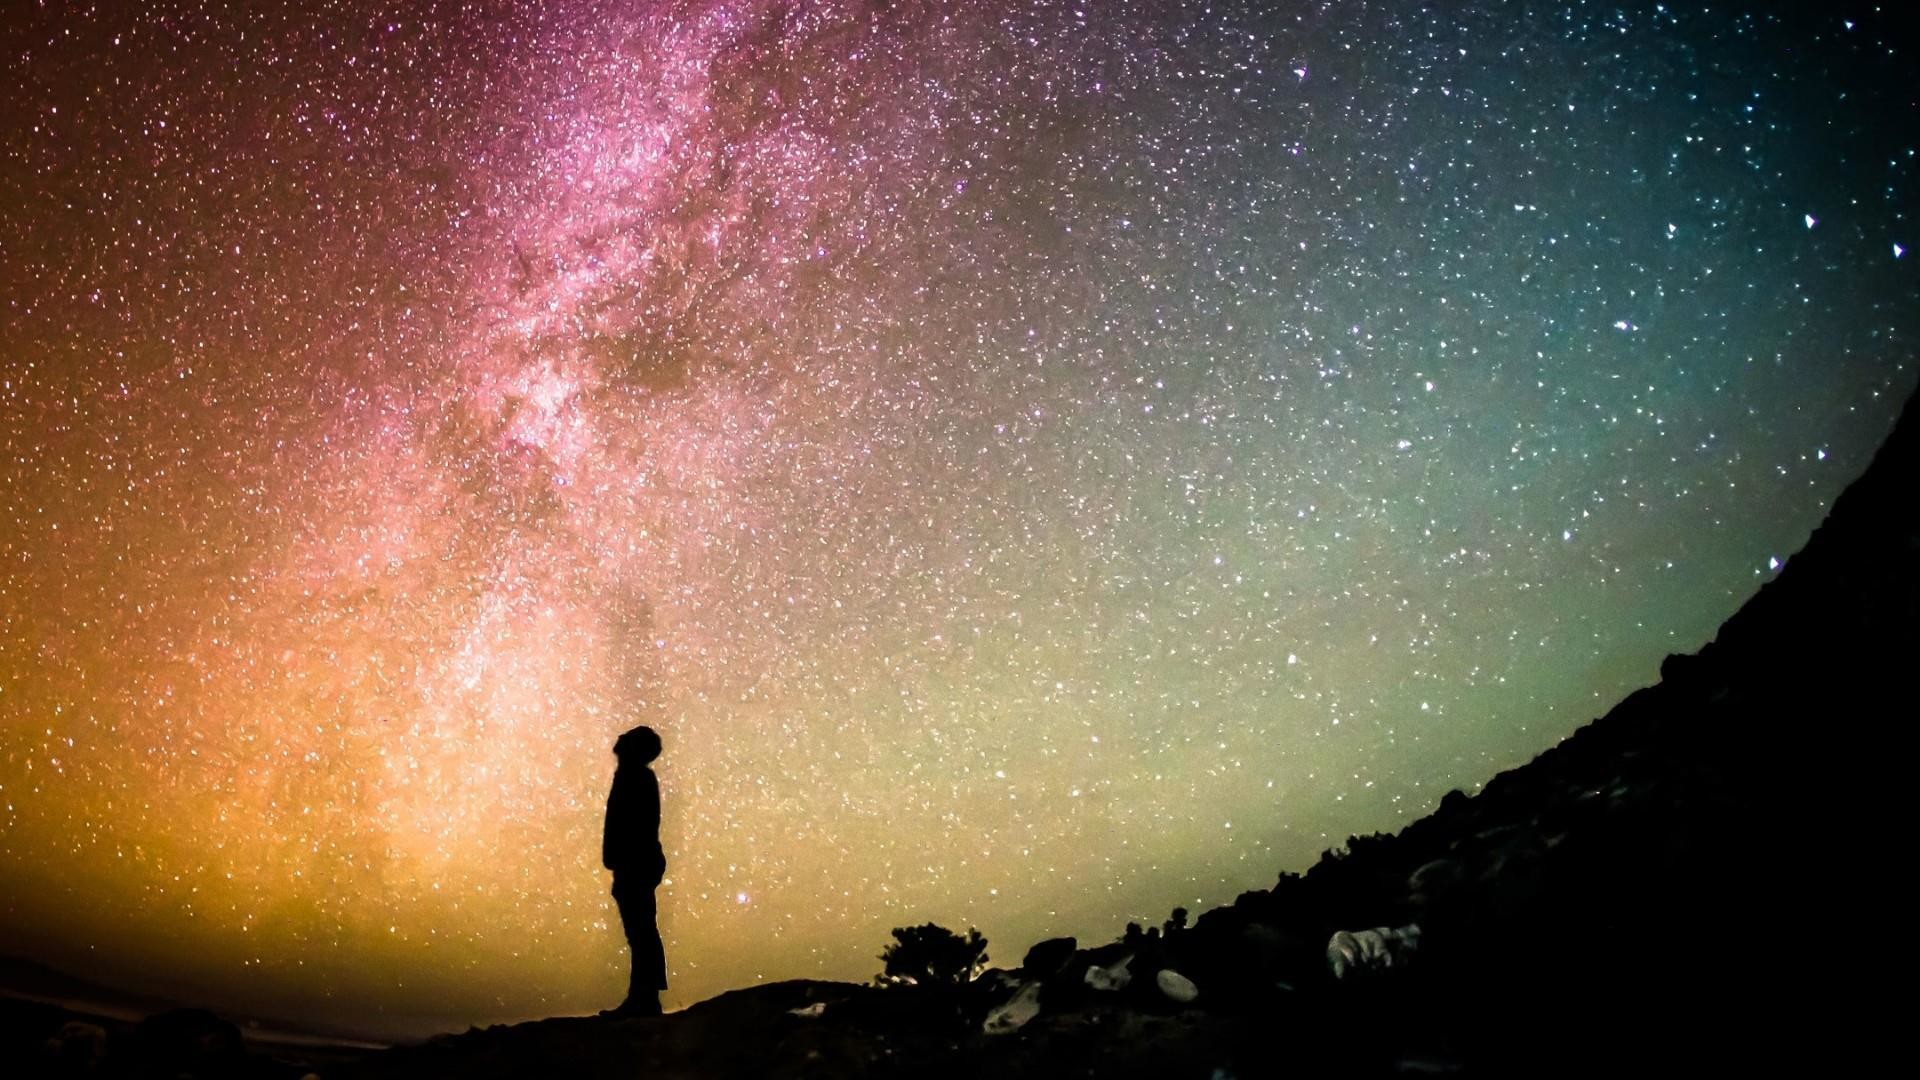 Title. Man looking up the starry night sky